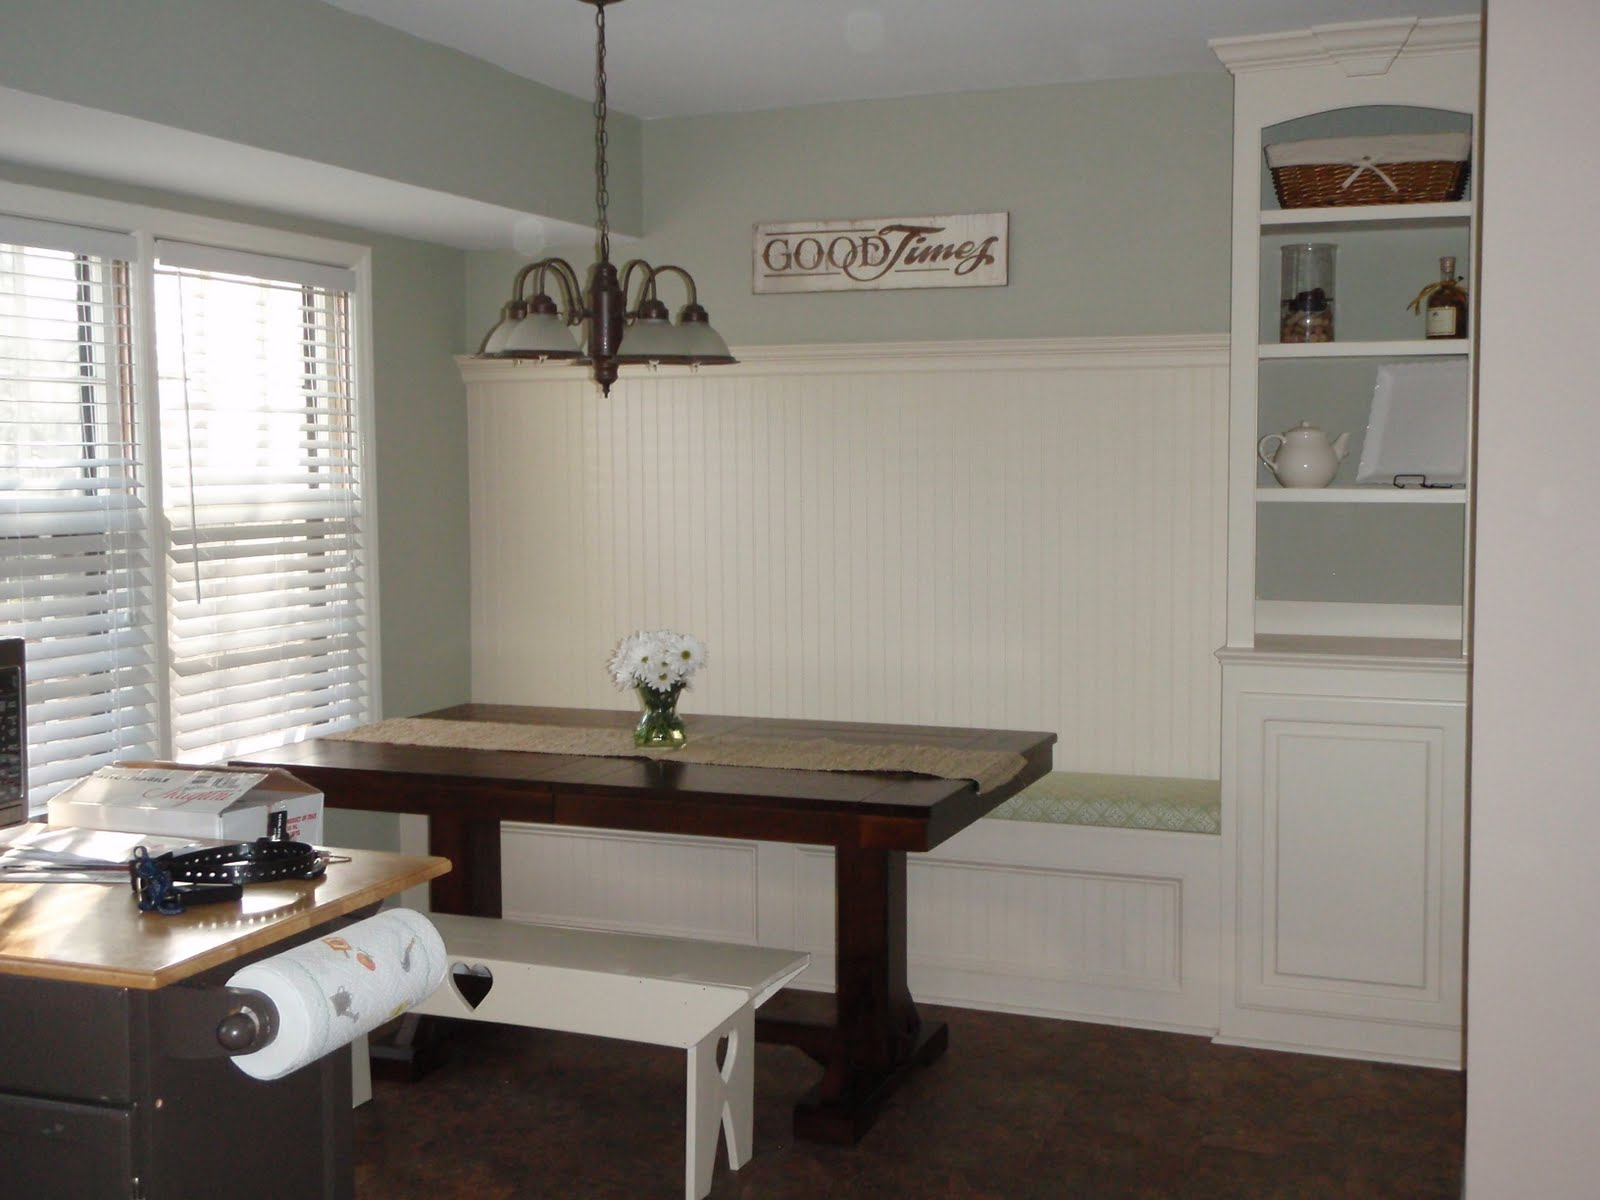 remodelaholic banquette kitchen renovation with built in banquette seating